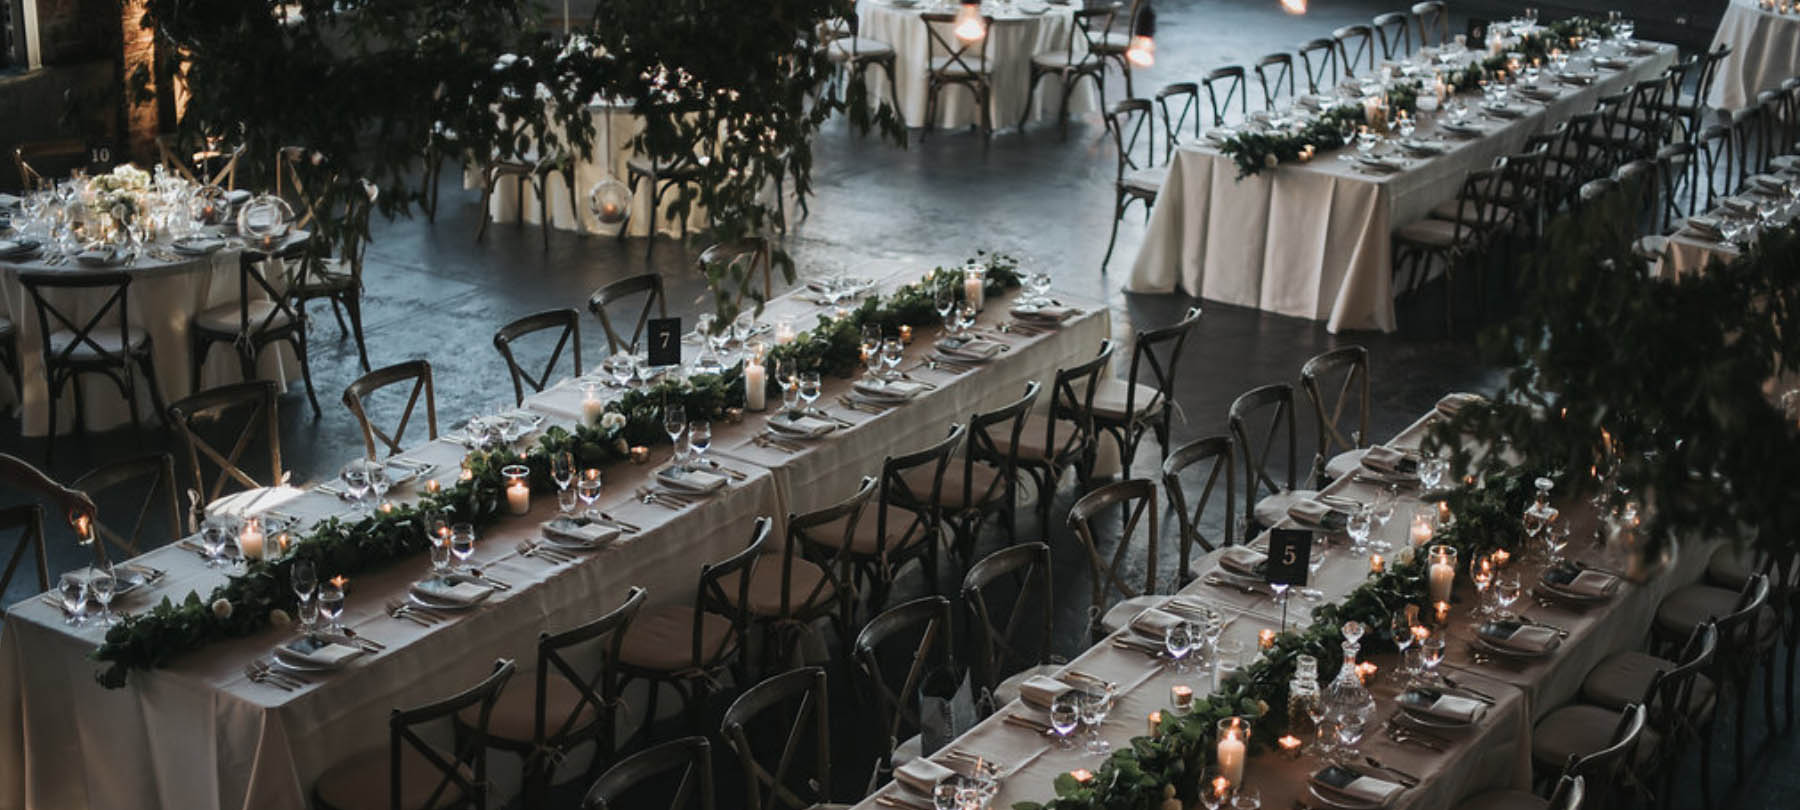 Wedding at Leftbank Annex floral design dining room overview